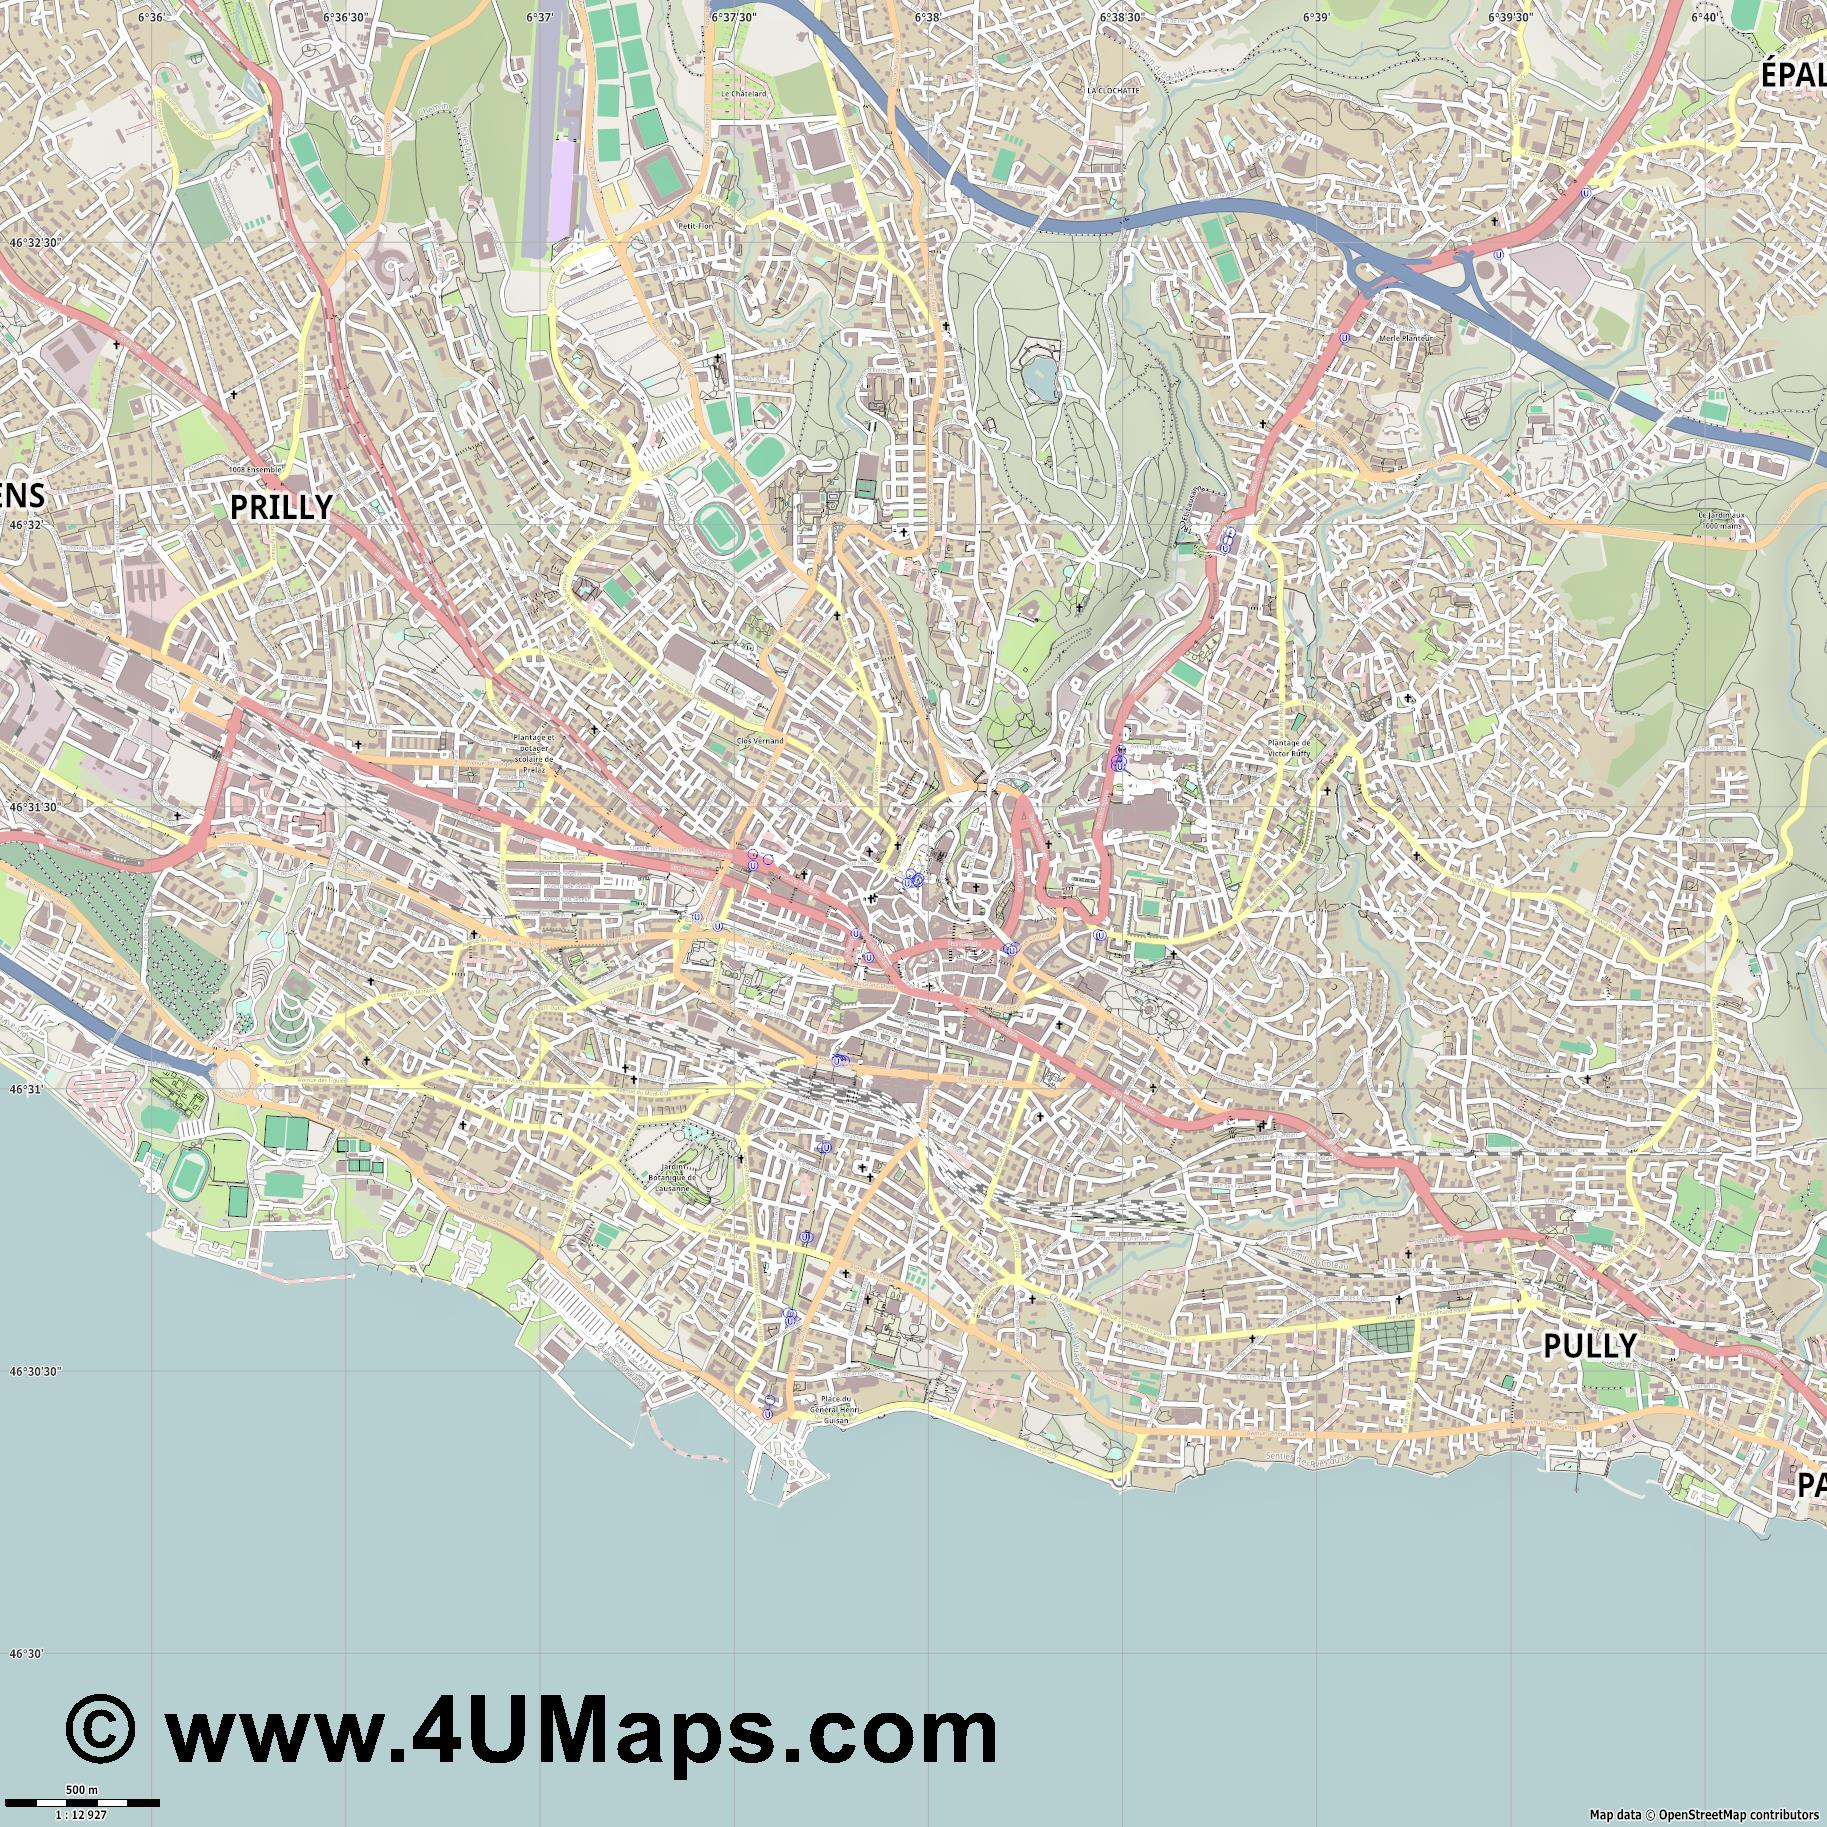 Svg Scalable Vector City Map Lausanne - Lausanne city map